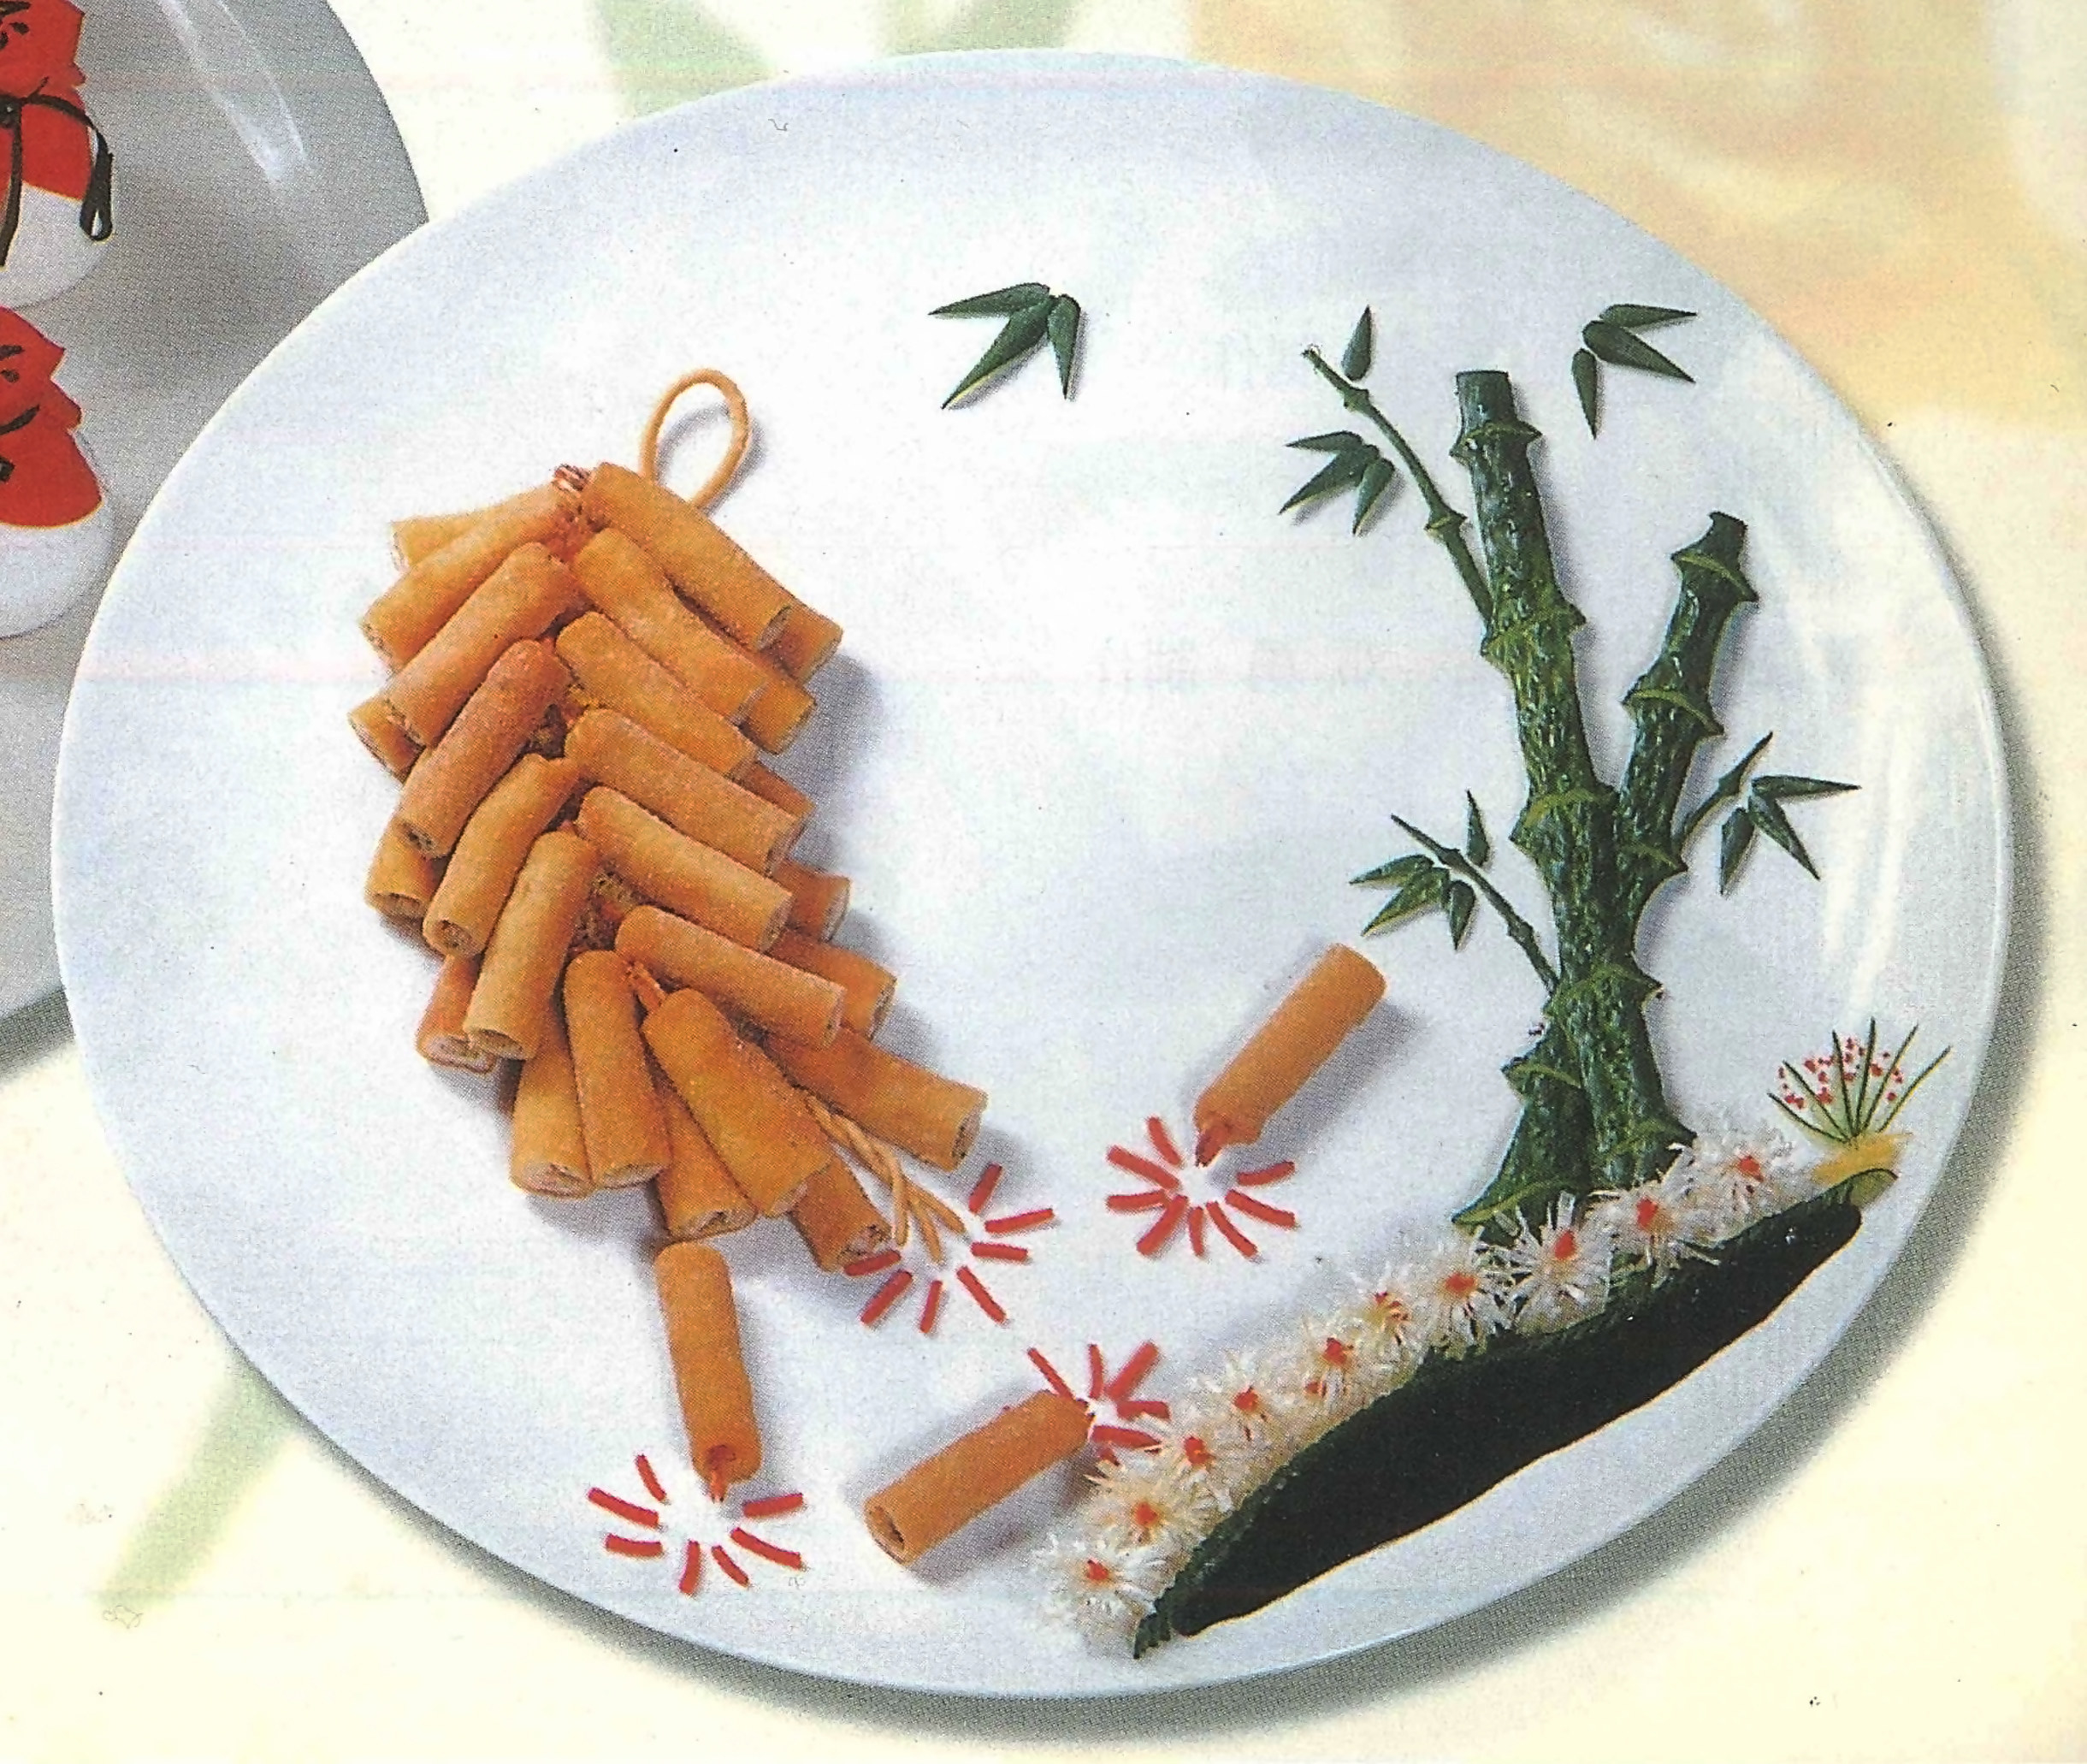 Spring rolls and bamboo are arranged on a plate to resemble Chinese fireworks and a landscape